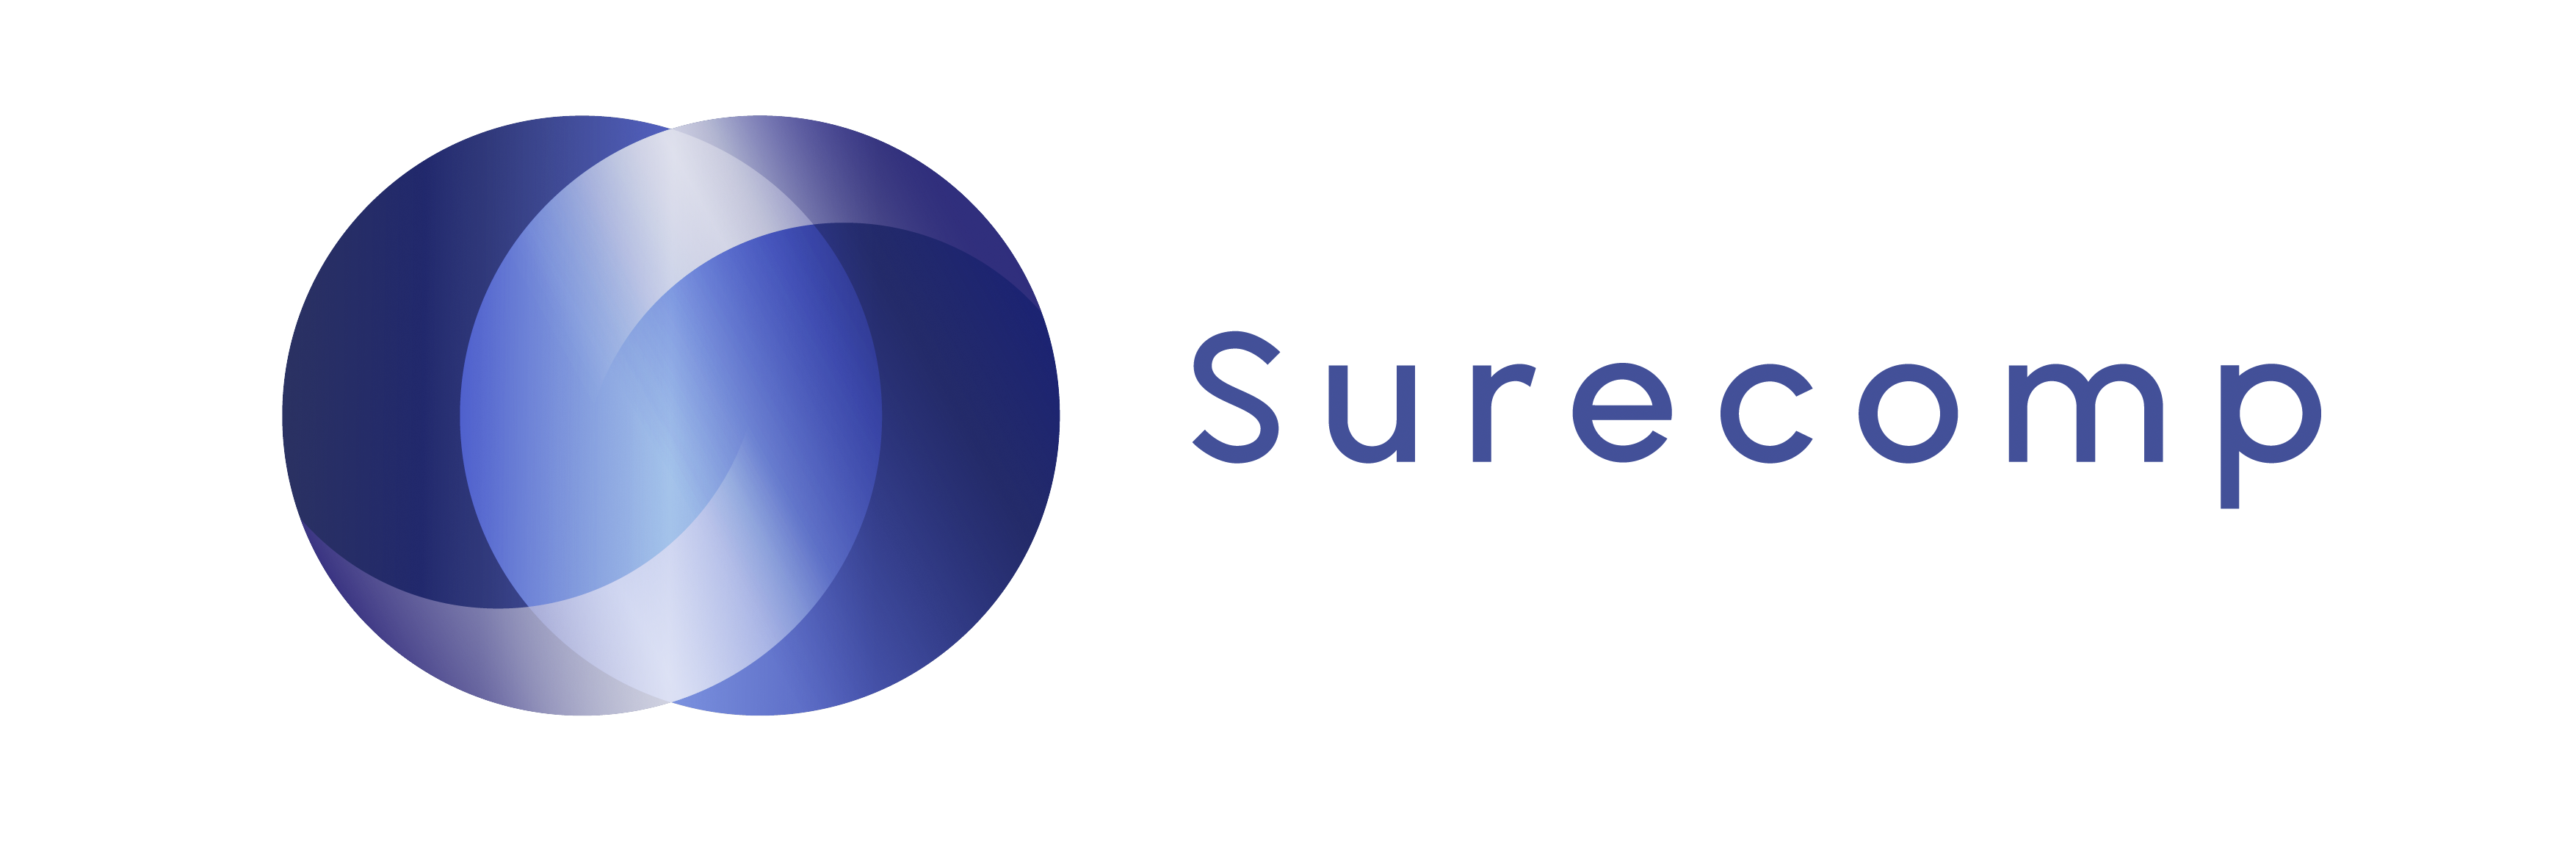 Surecomp Marketplace Now Live With AML Solution ThetaRay